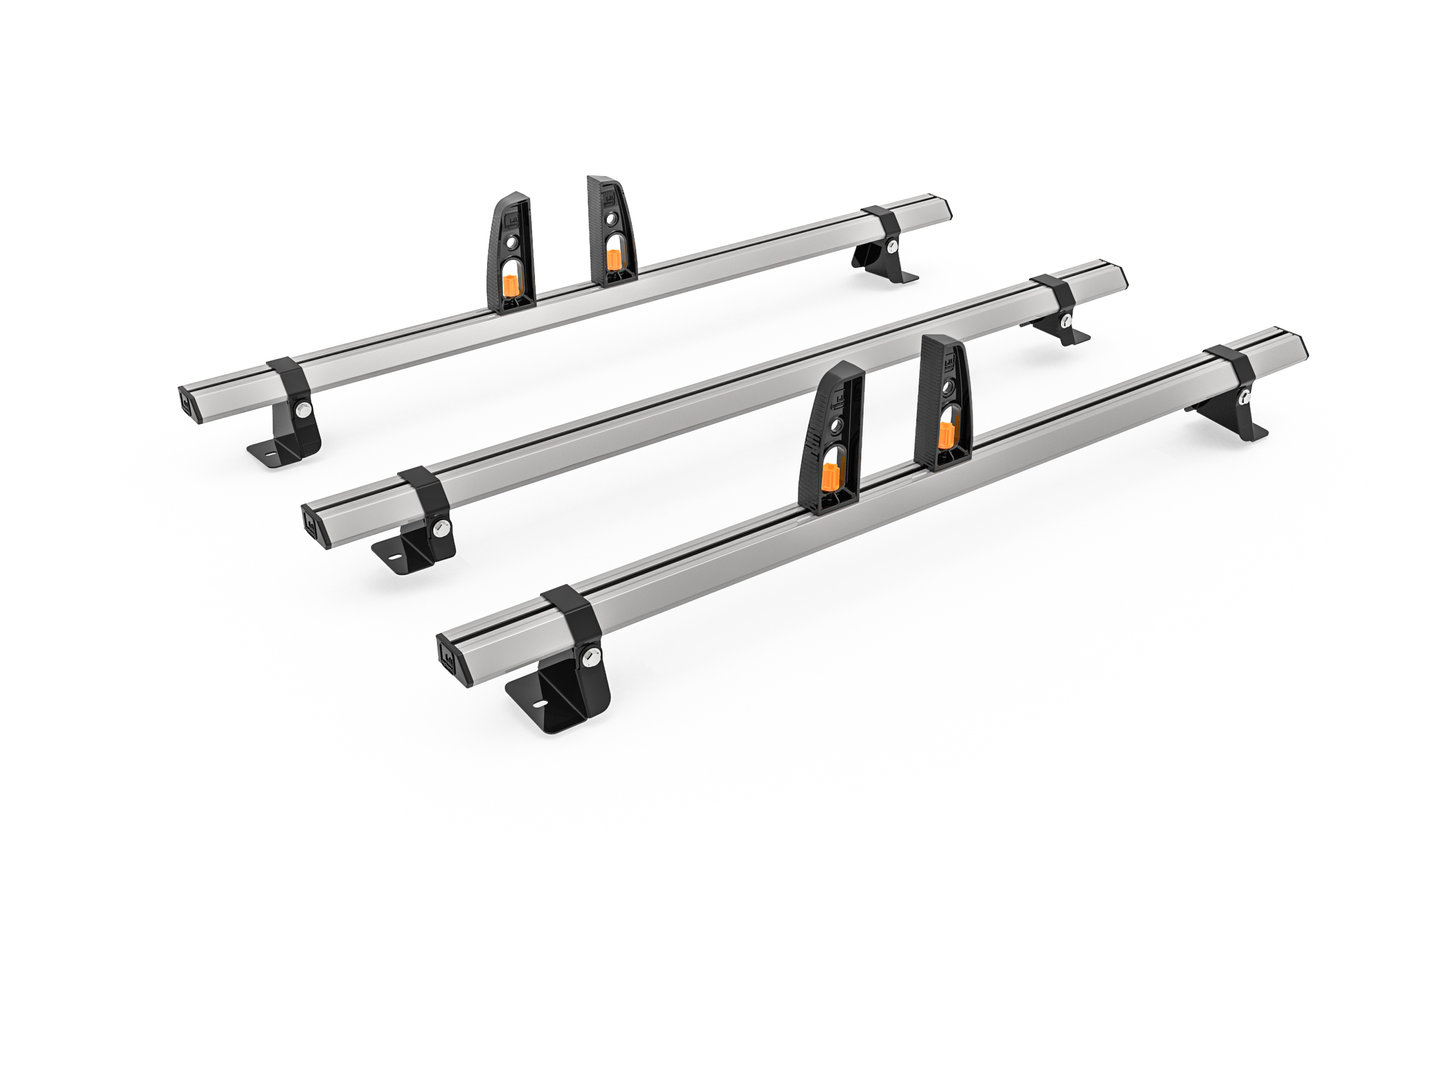 VECTA Bar Roof Rack Kit - Peugeot Expert March 2016 Onwards